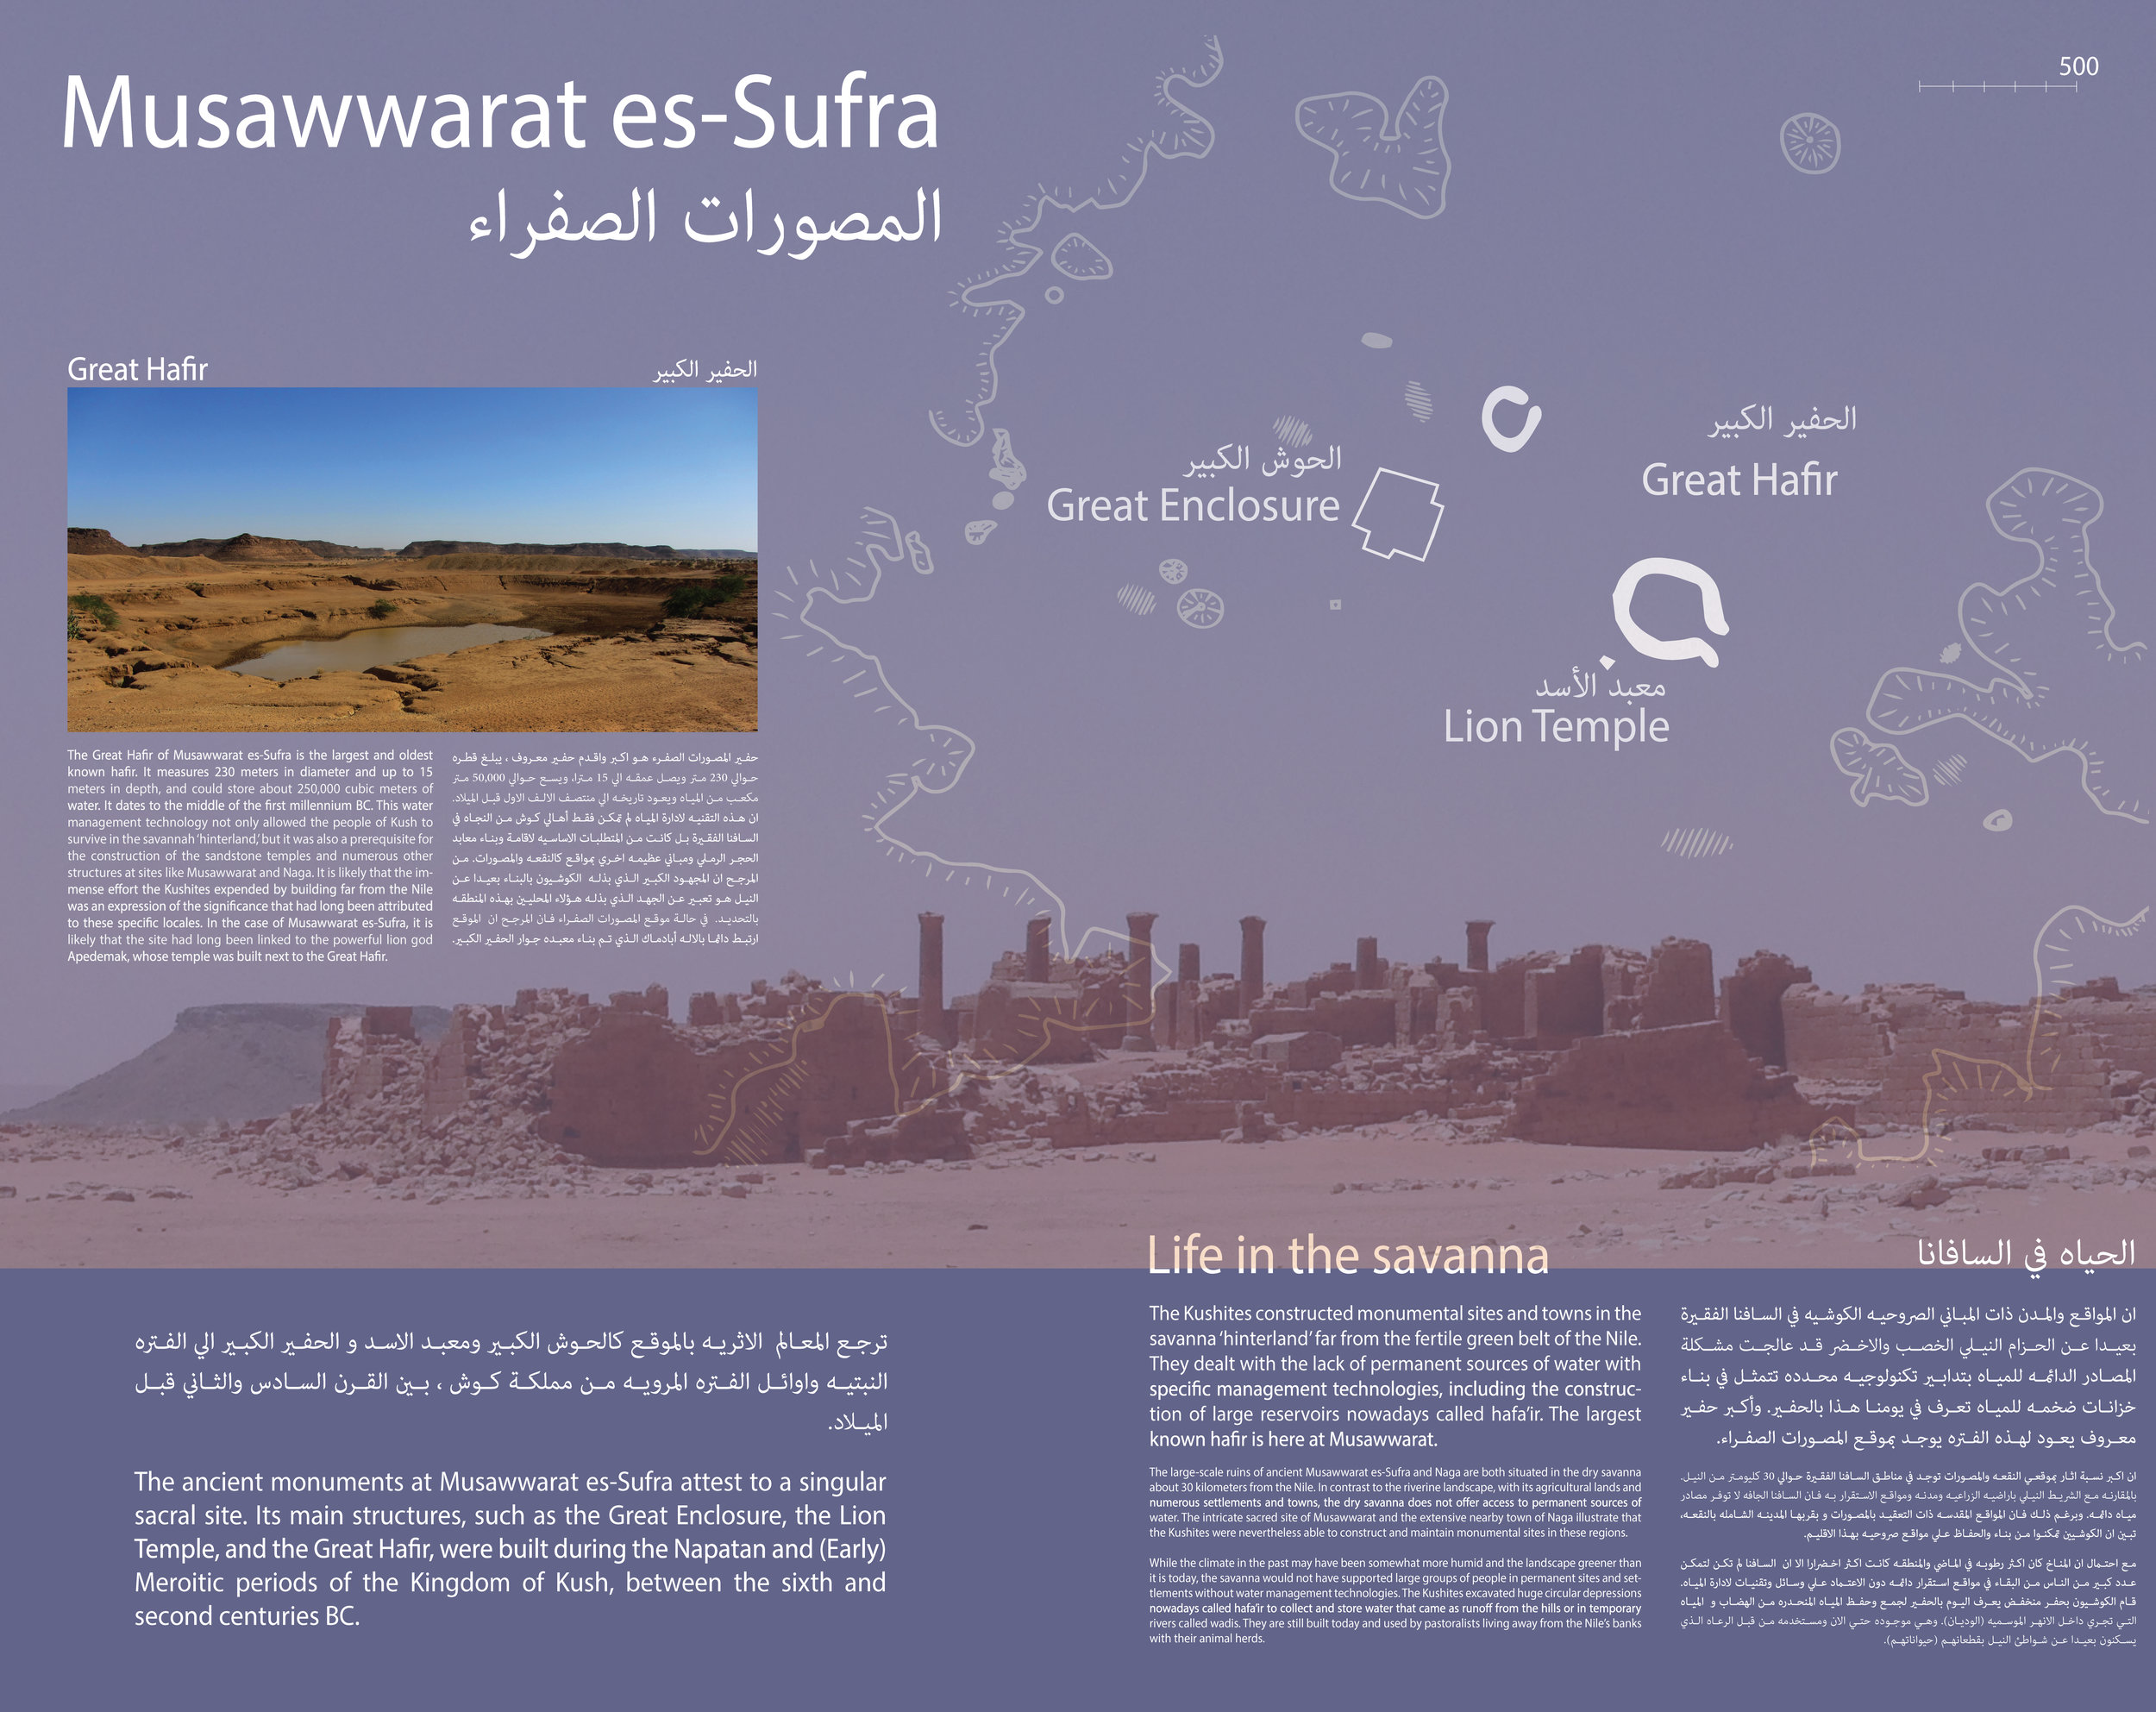 Interpretive Panel introducing the site of Musawwarat es-Sufra